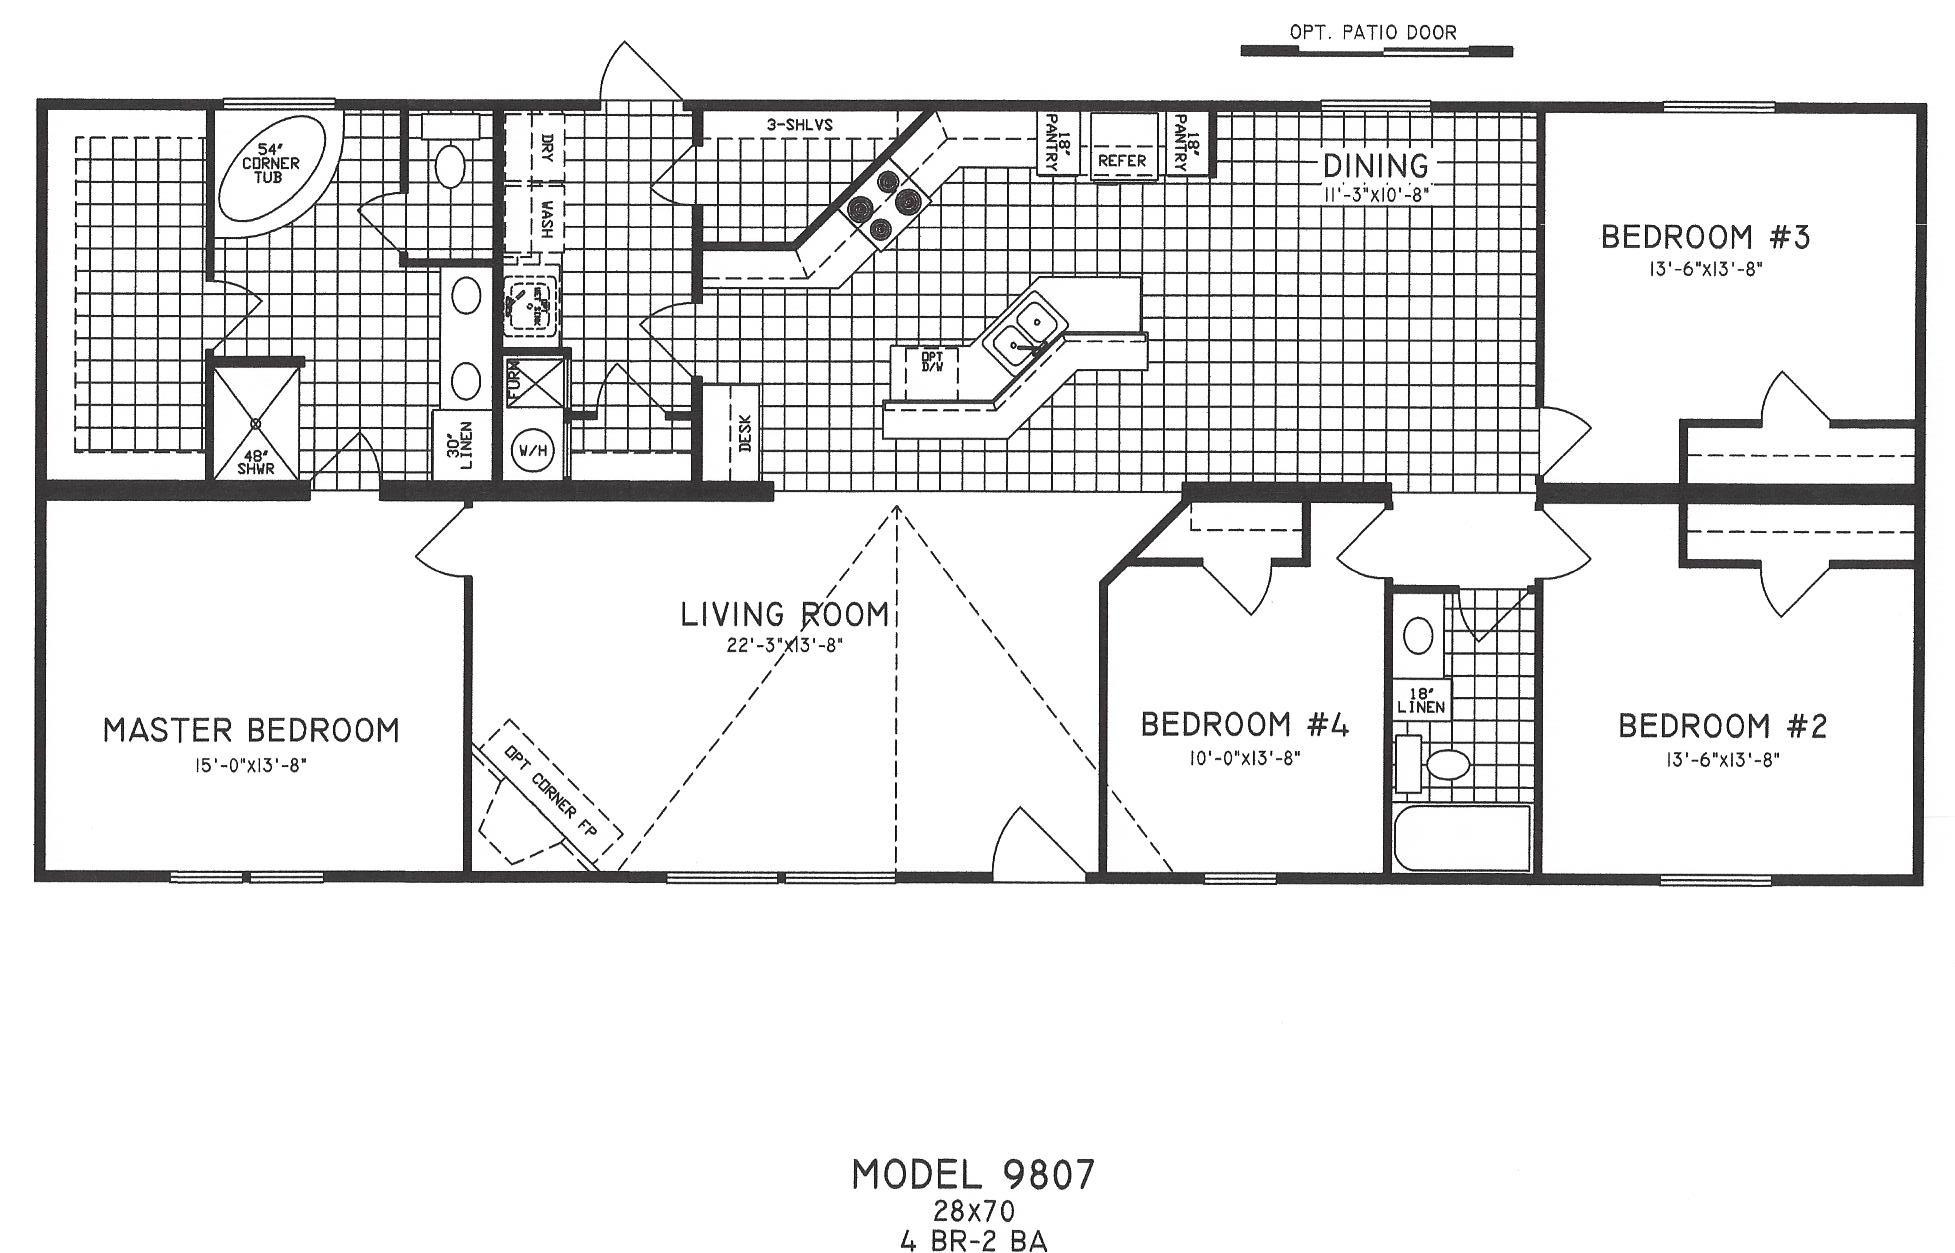 4 bedroom floor plan c 9807 hawks homes manufactured modular conway little rock arkansas - Bedroom home plan ...